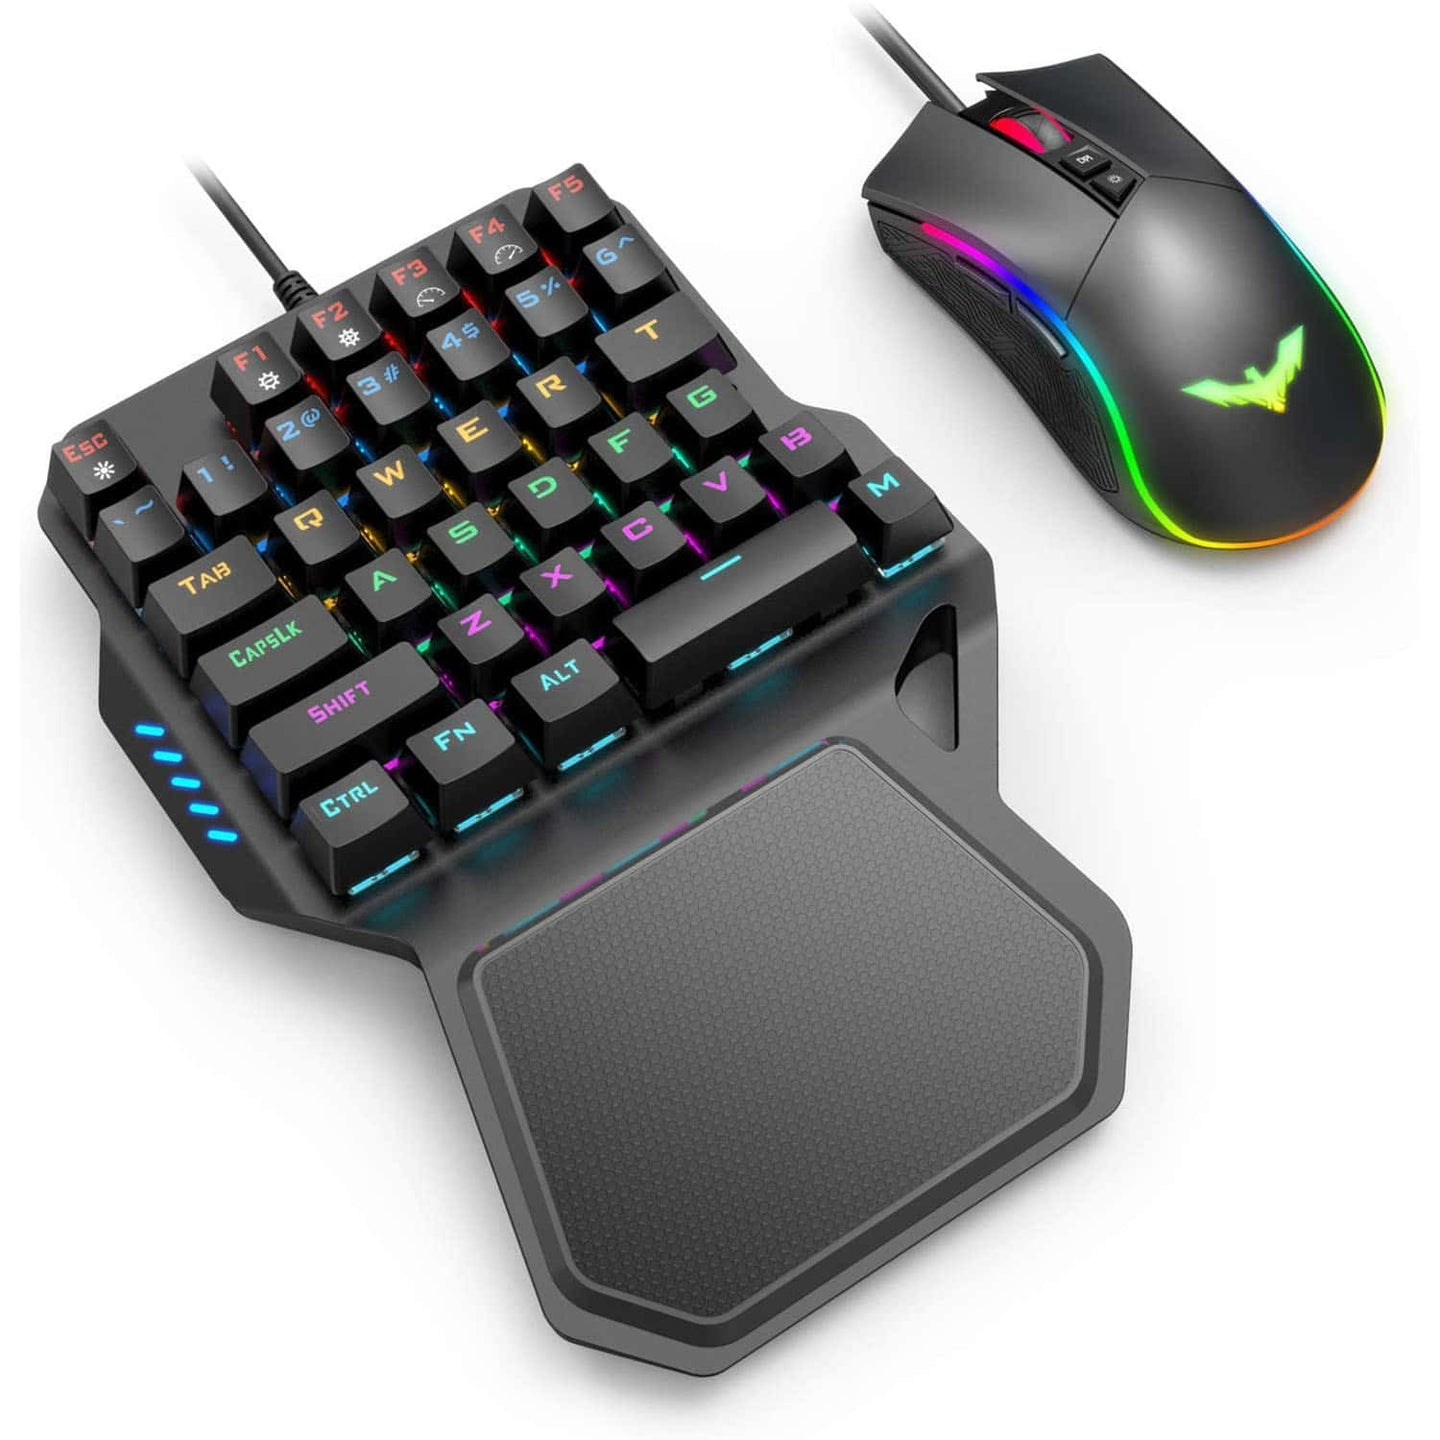 HAVIT RK-B20 One Hand RGB Gaming Keyboard & Programmable Mouse Combo - 36 Keys USB Keypad with Wrist Rest